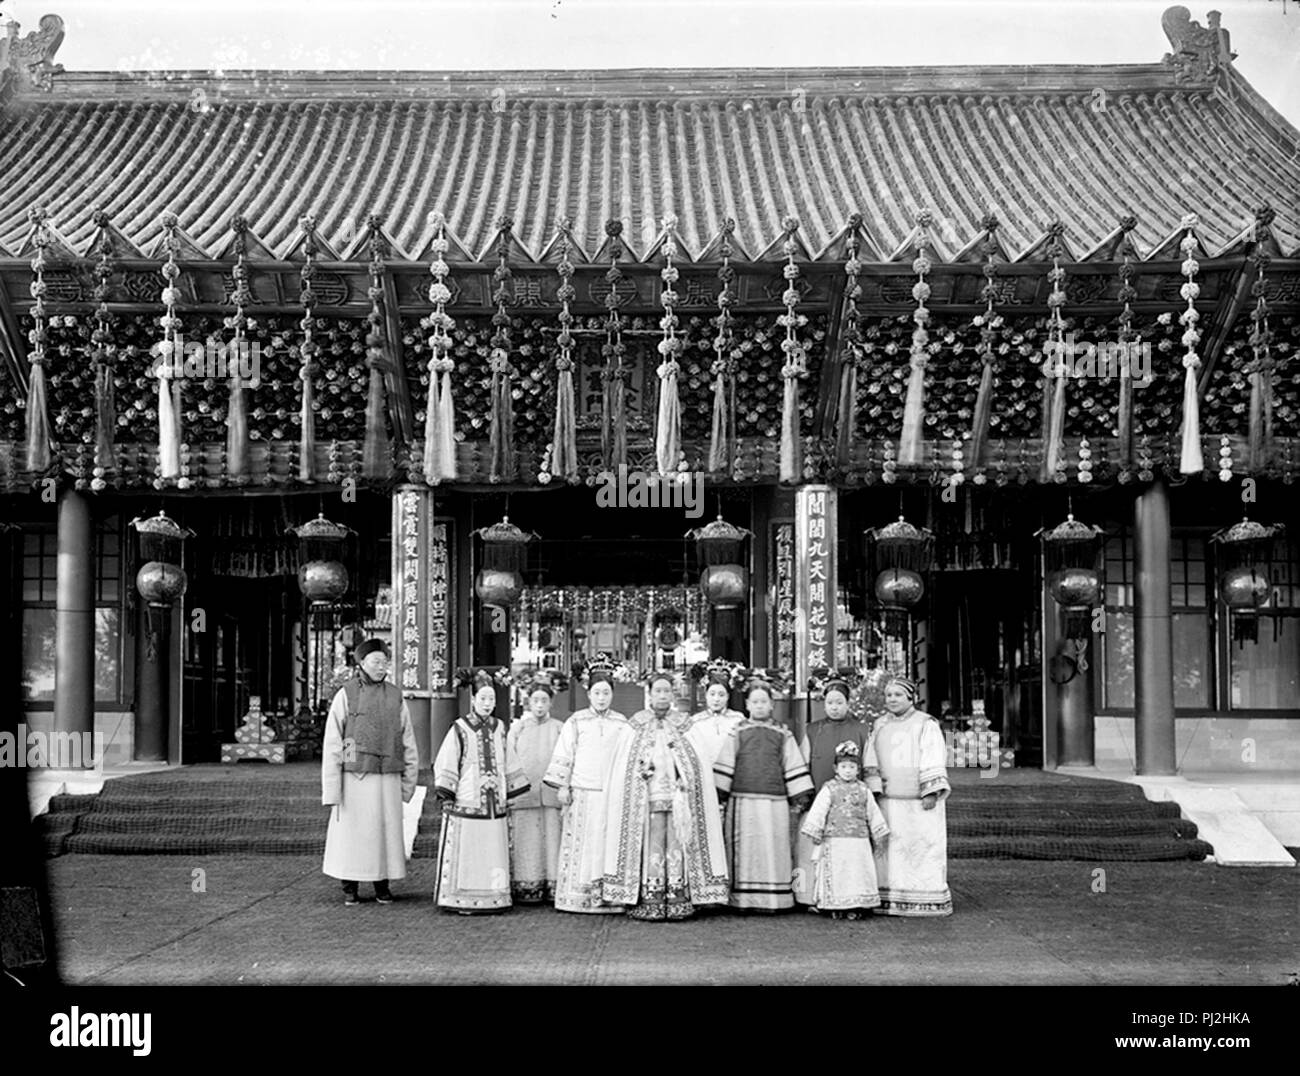 Empress Dowager Cixi (front middle) with court attendants and the Guangxu Emperor's empress (second from left) - Stock Image